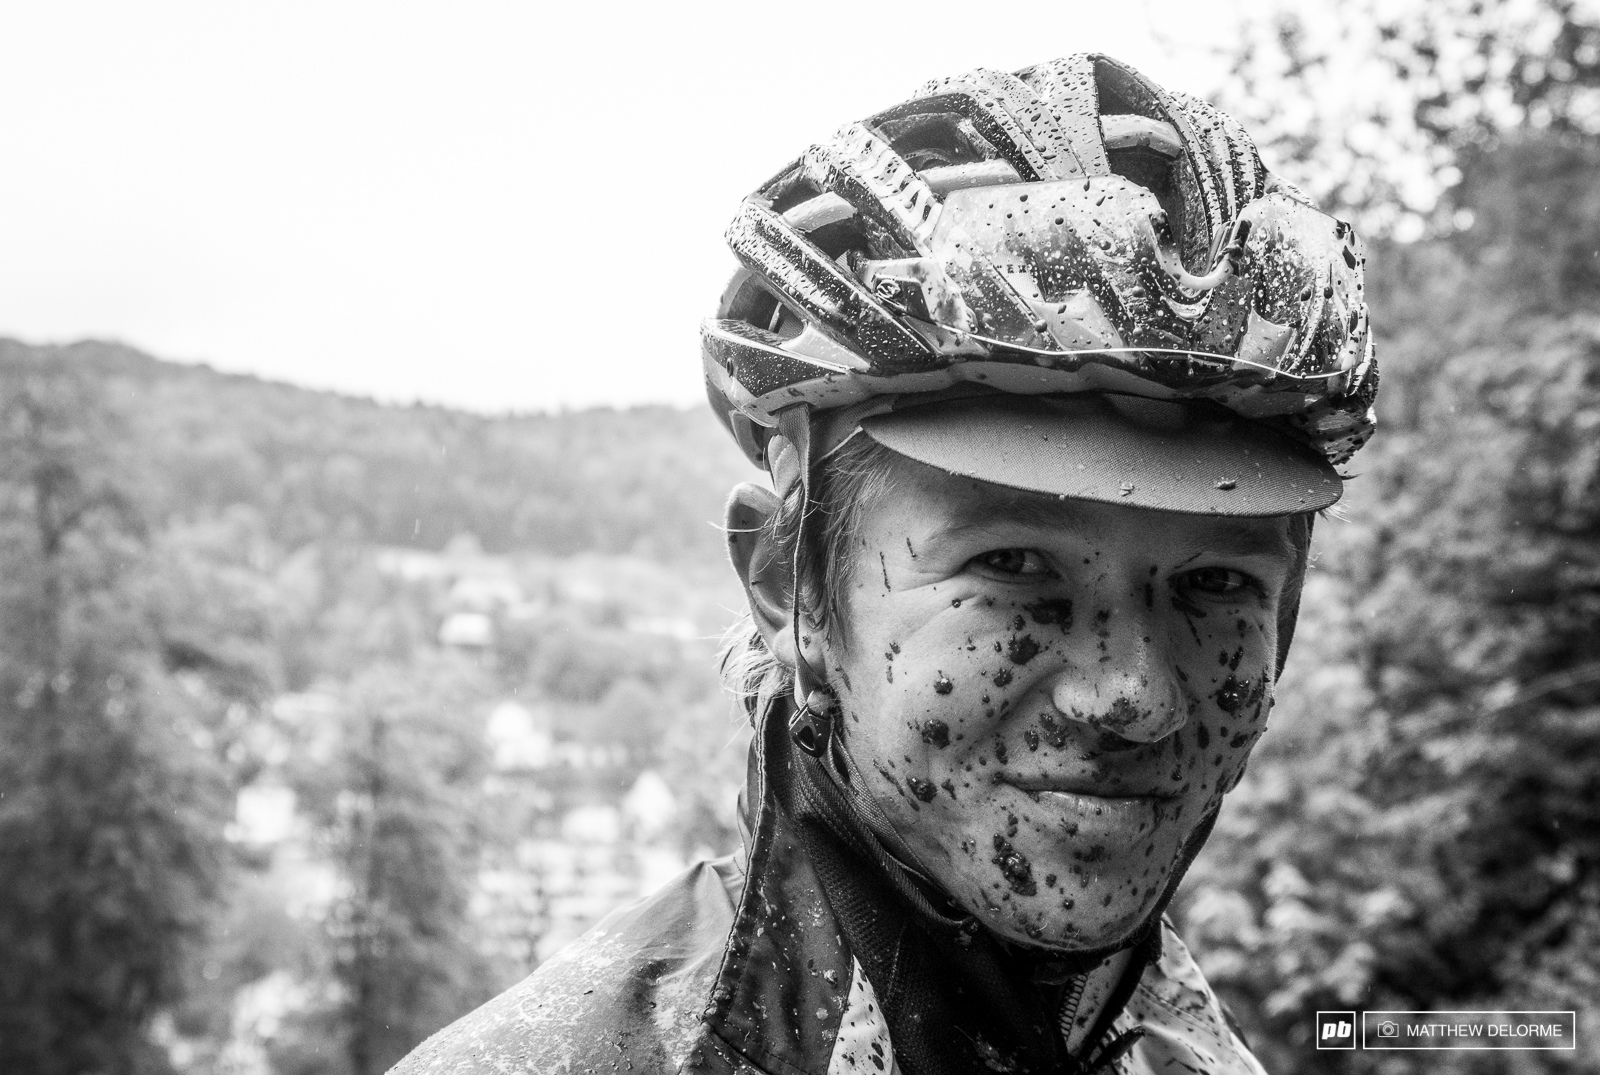 Keegan Swenson with a mud mask any spa service would be envious of.